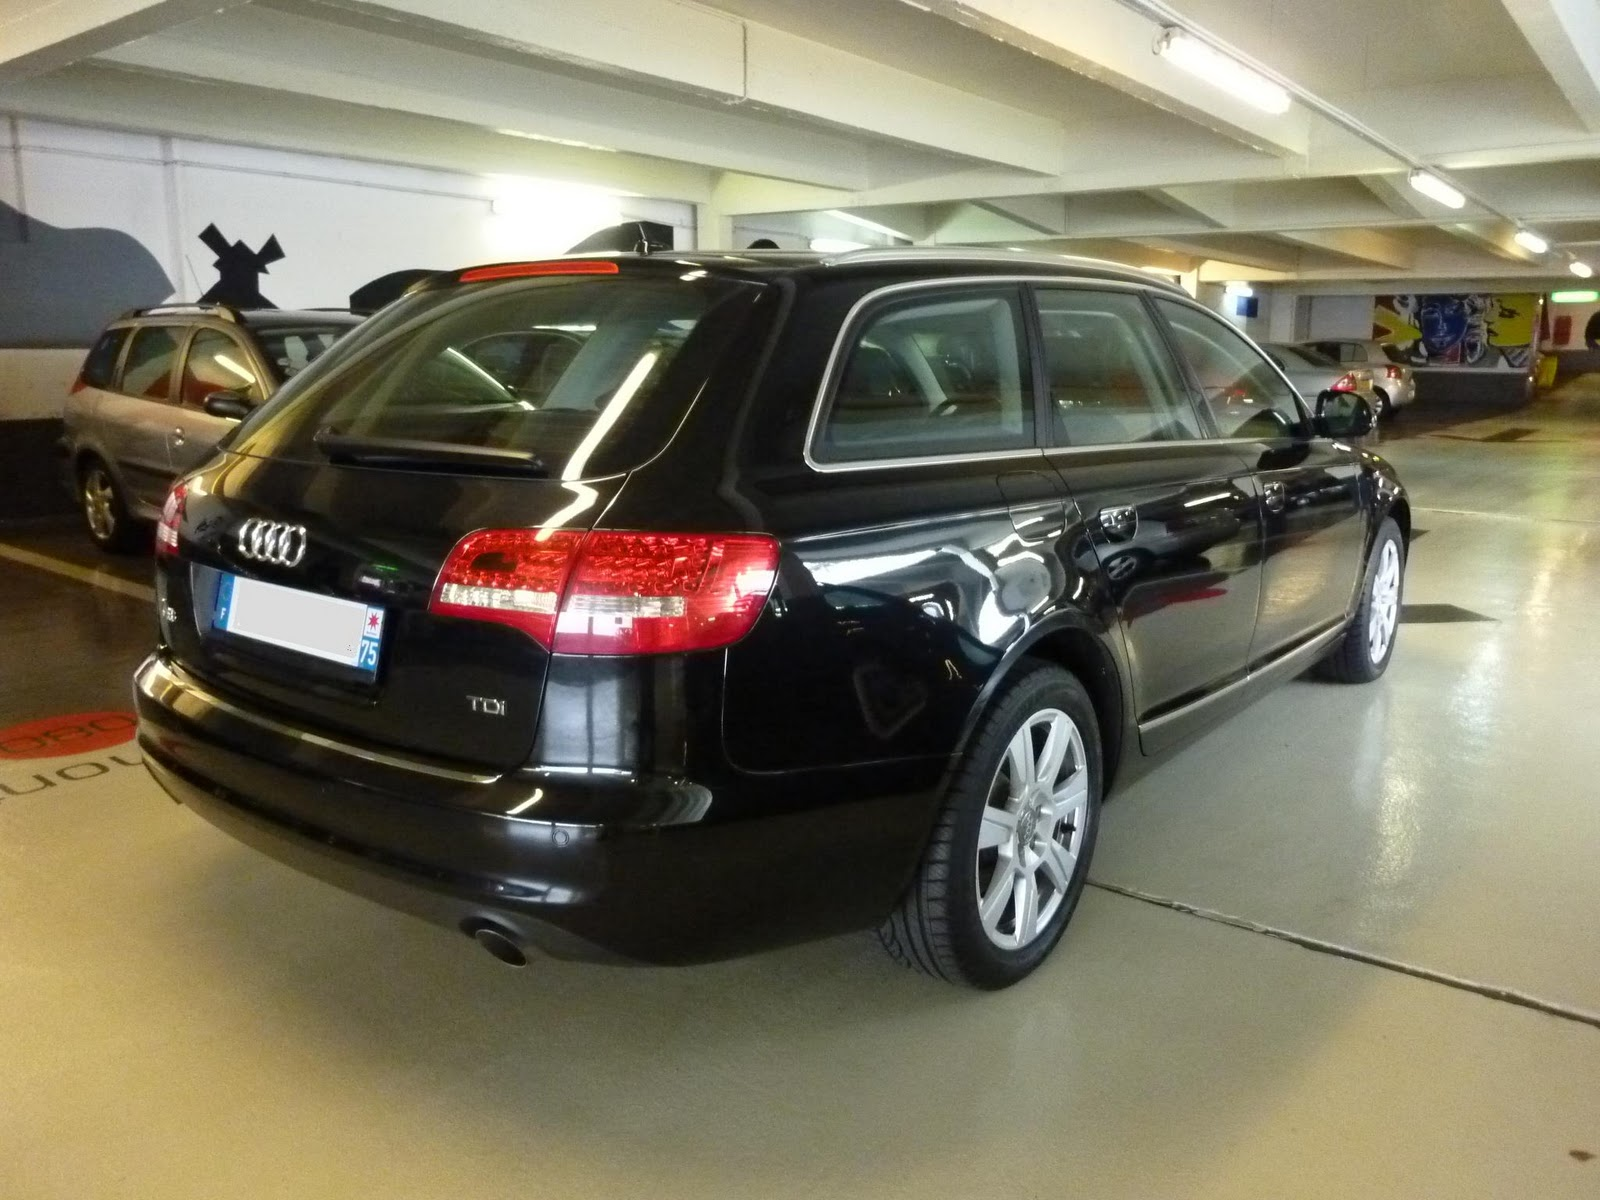 autocoach d p t vente automobile paris audi a6 avant tdi 170ch multitronic ambition luxe 2010. Black Bedroom Furniture Sets. Home Design Ideas